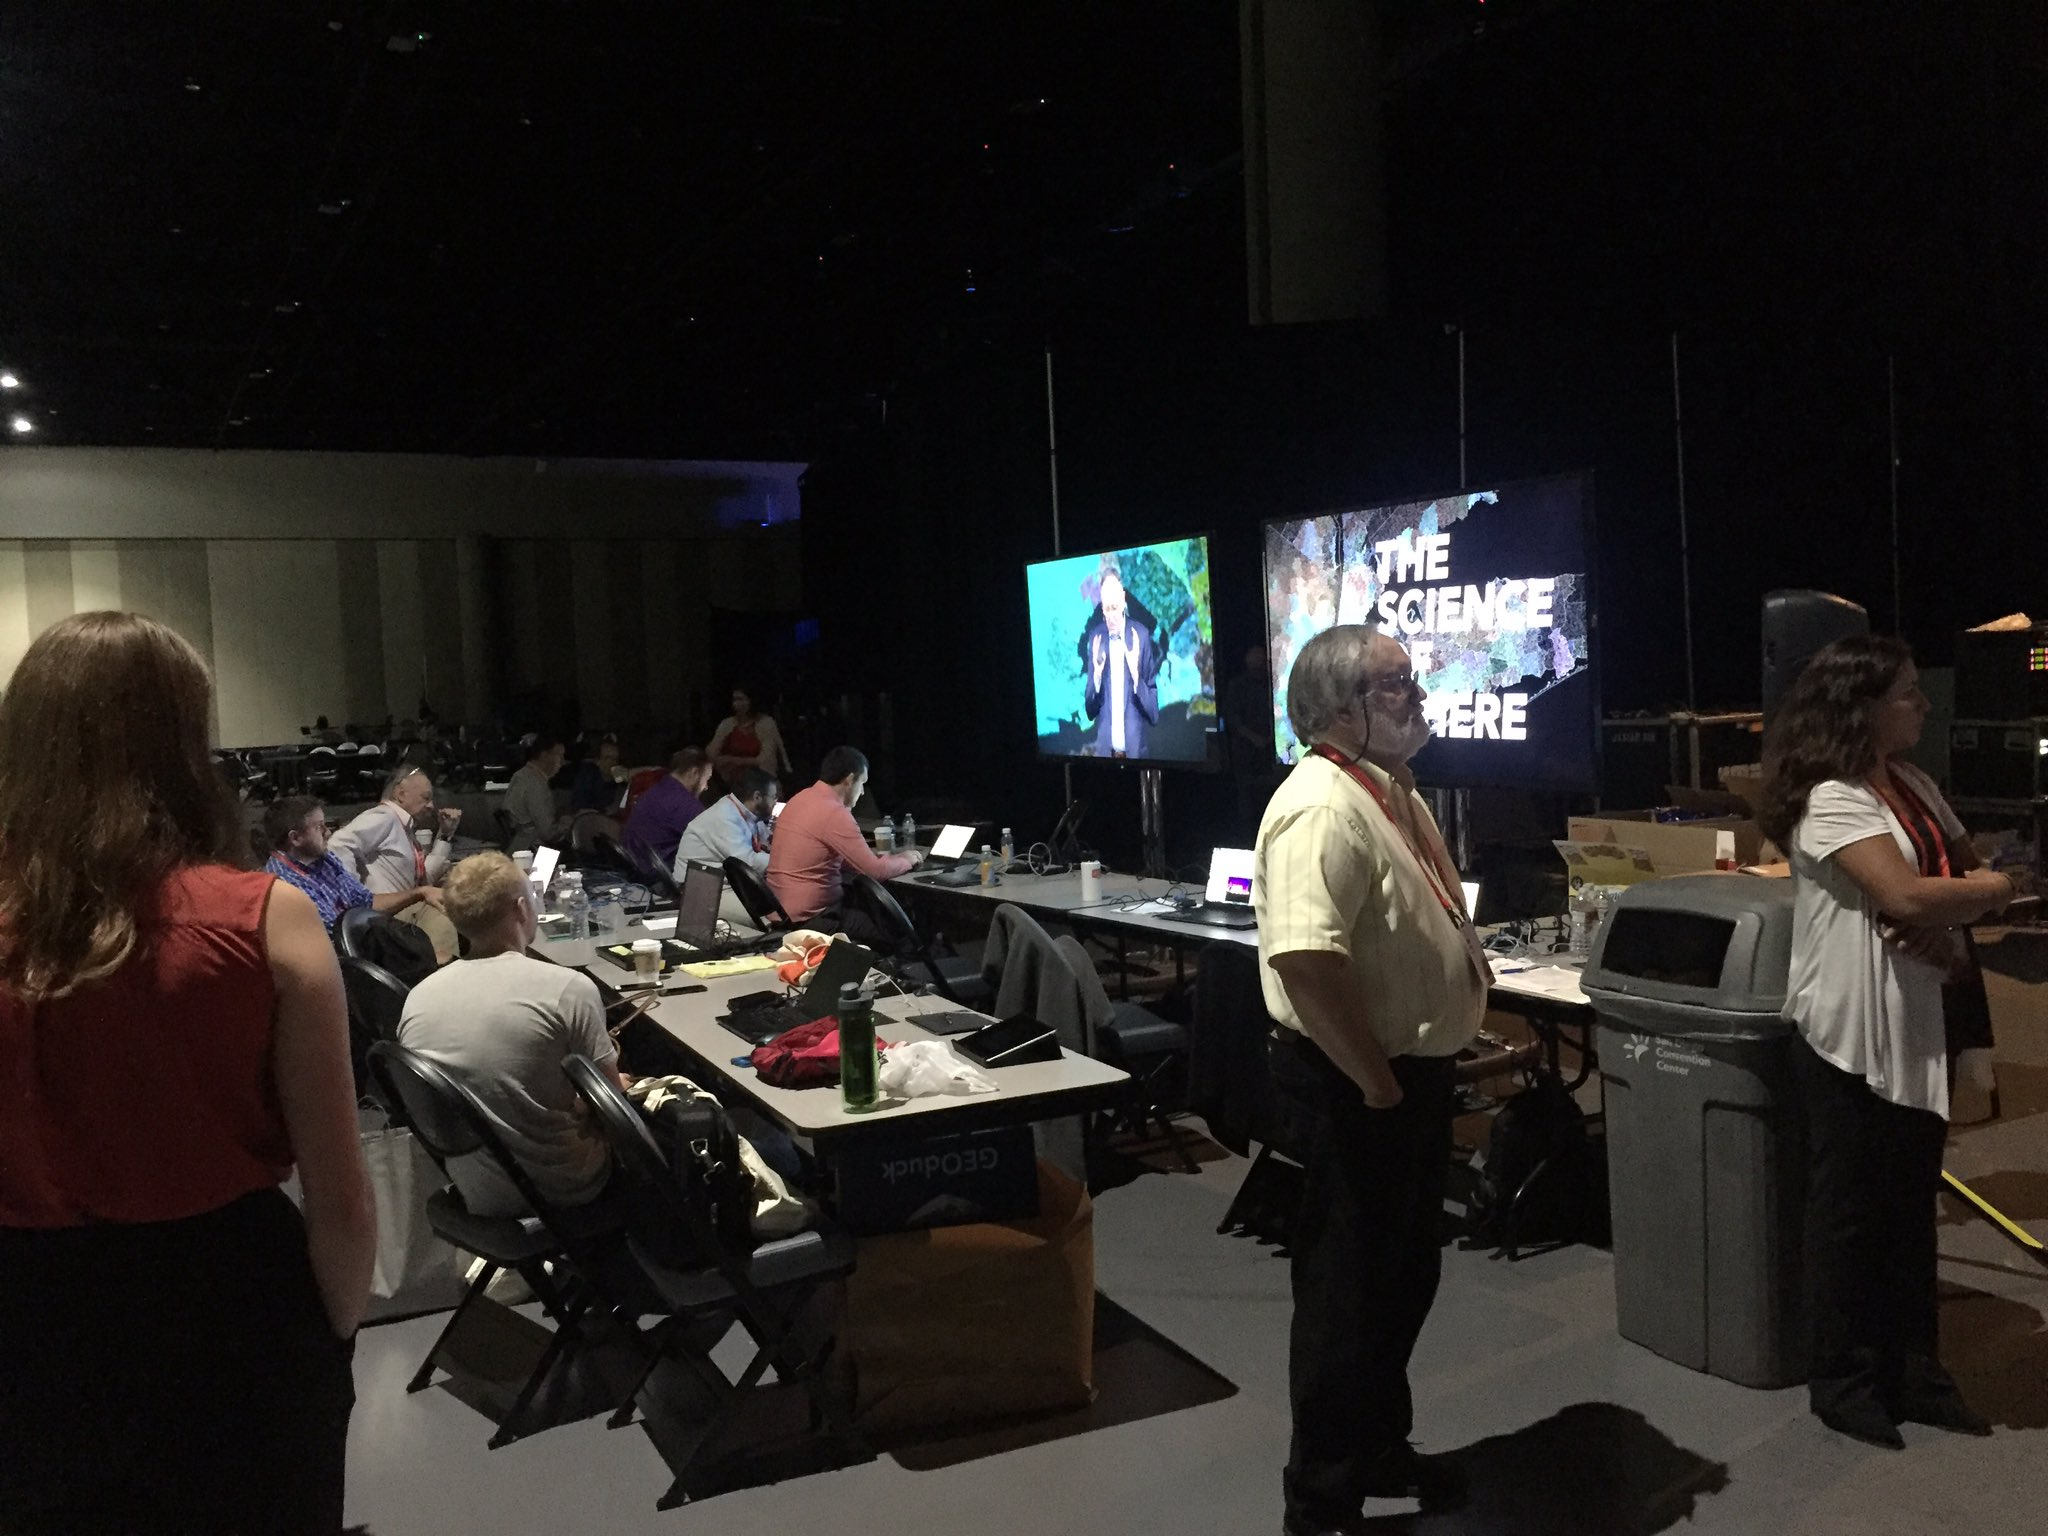 A view from backstage at #EsriUC! Enjoy the week! #GIS https://t.co/objxJlVo3u